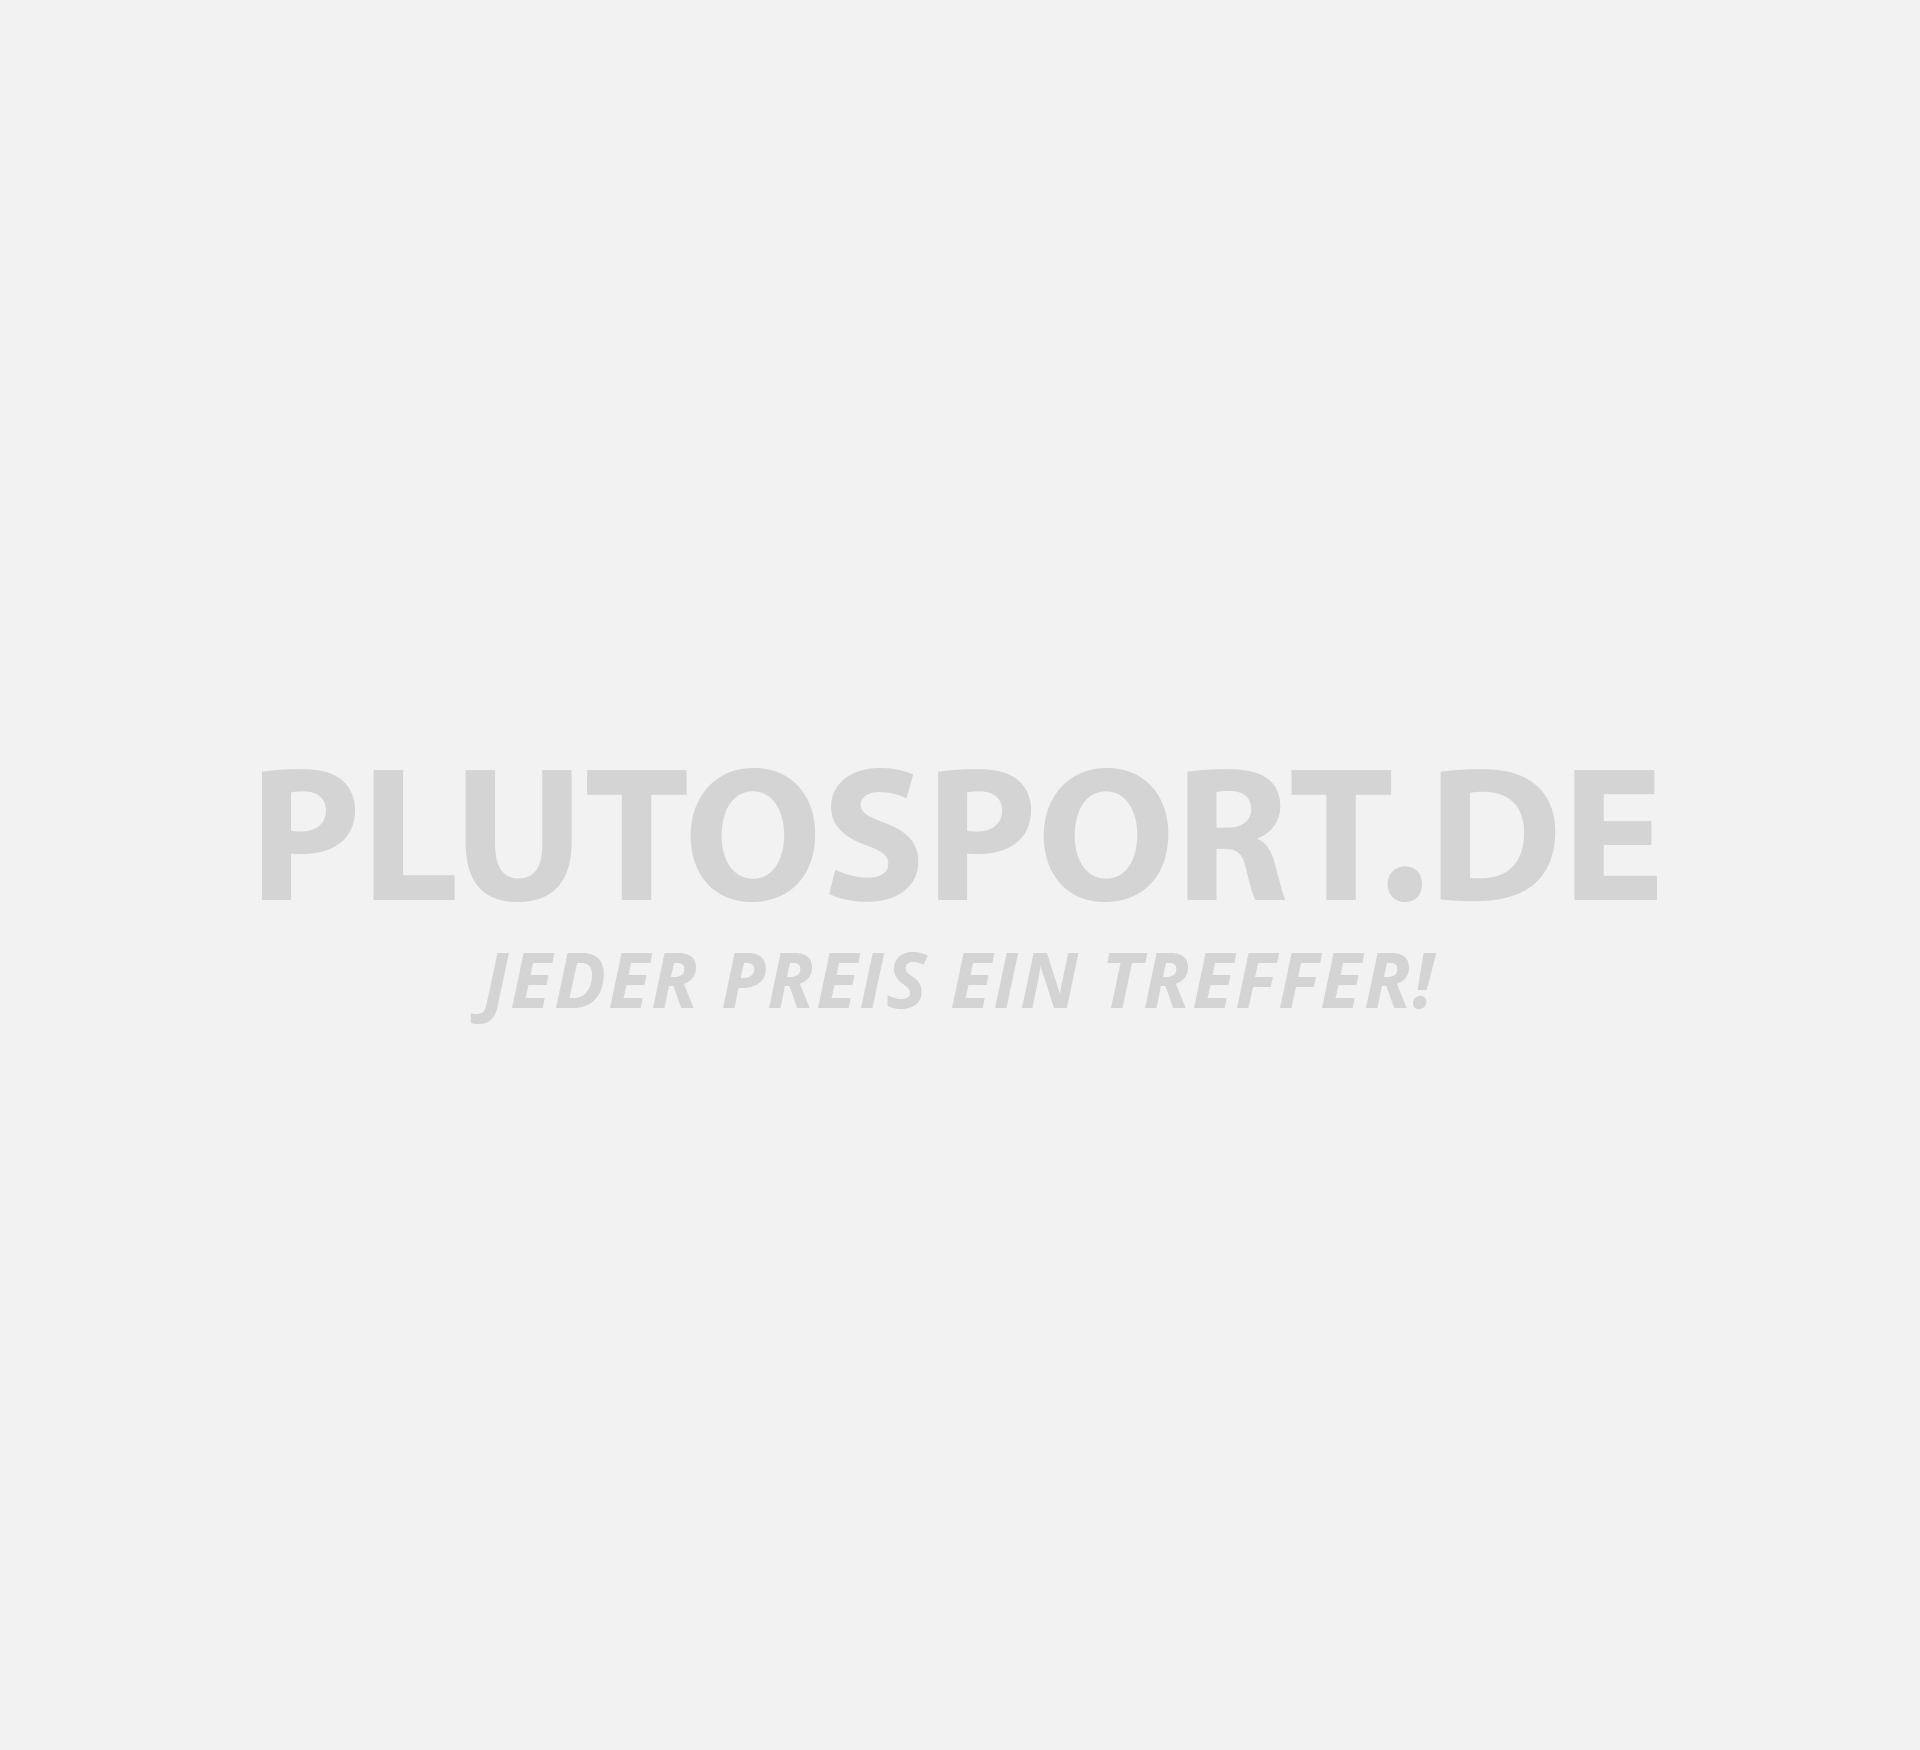 Nike 1000 Softset Outdoor Beachvolleyball